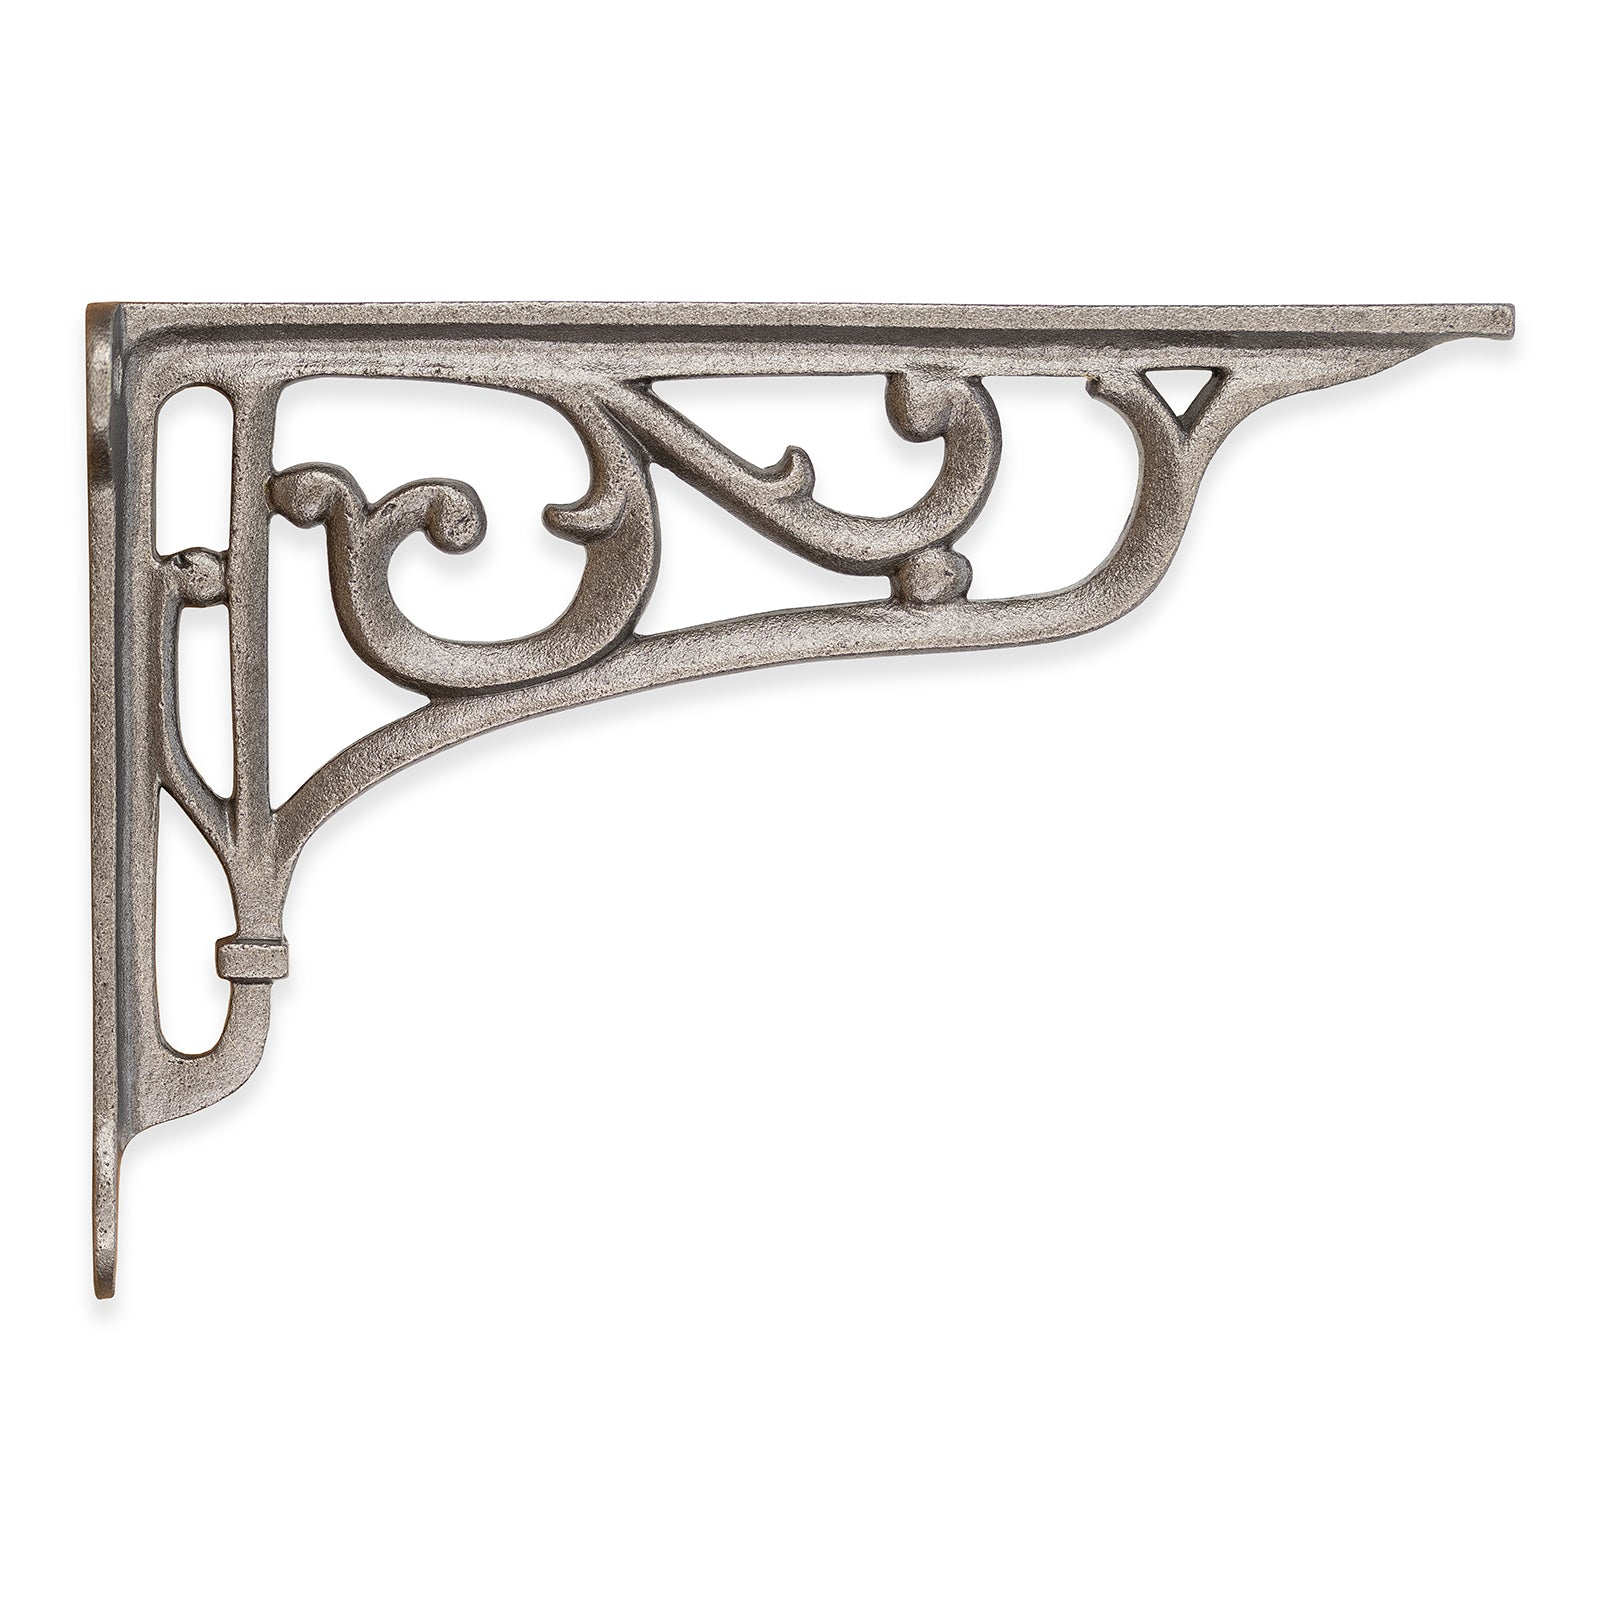 Cast Iron Shelf Bracket Vine Design